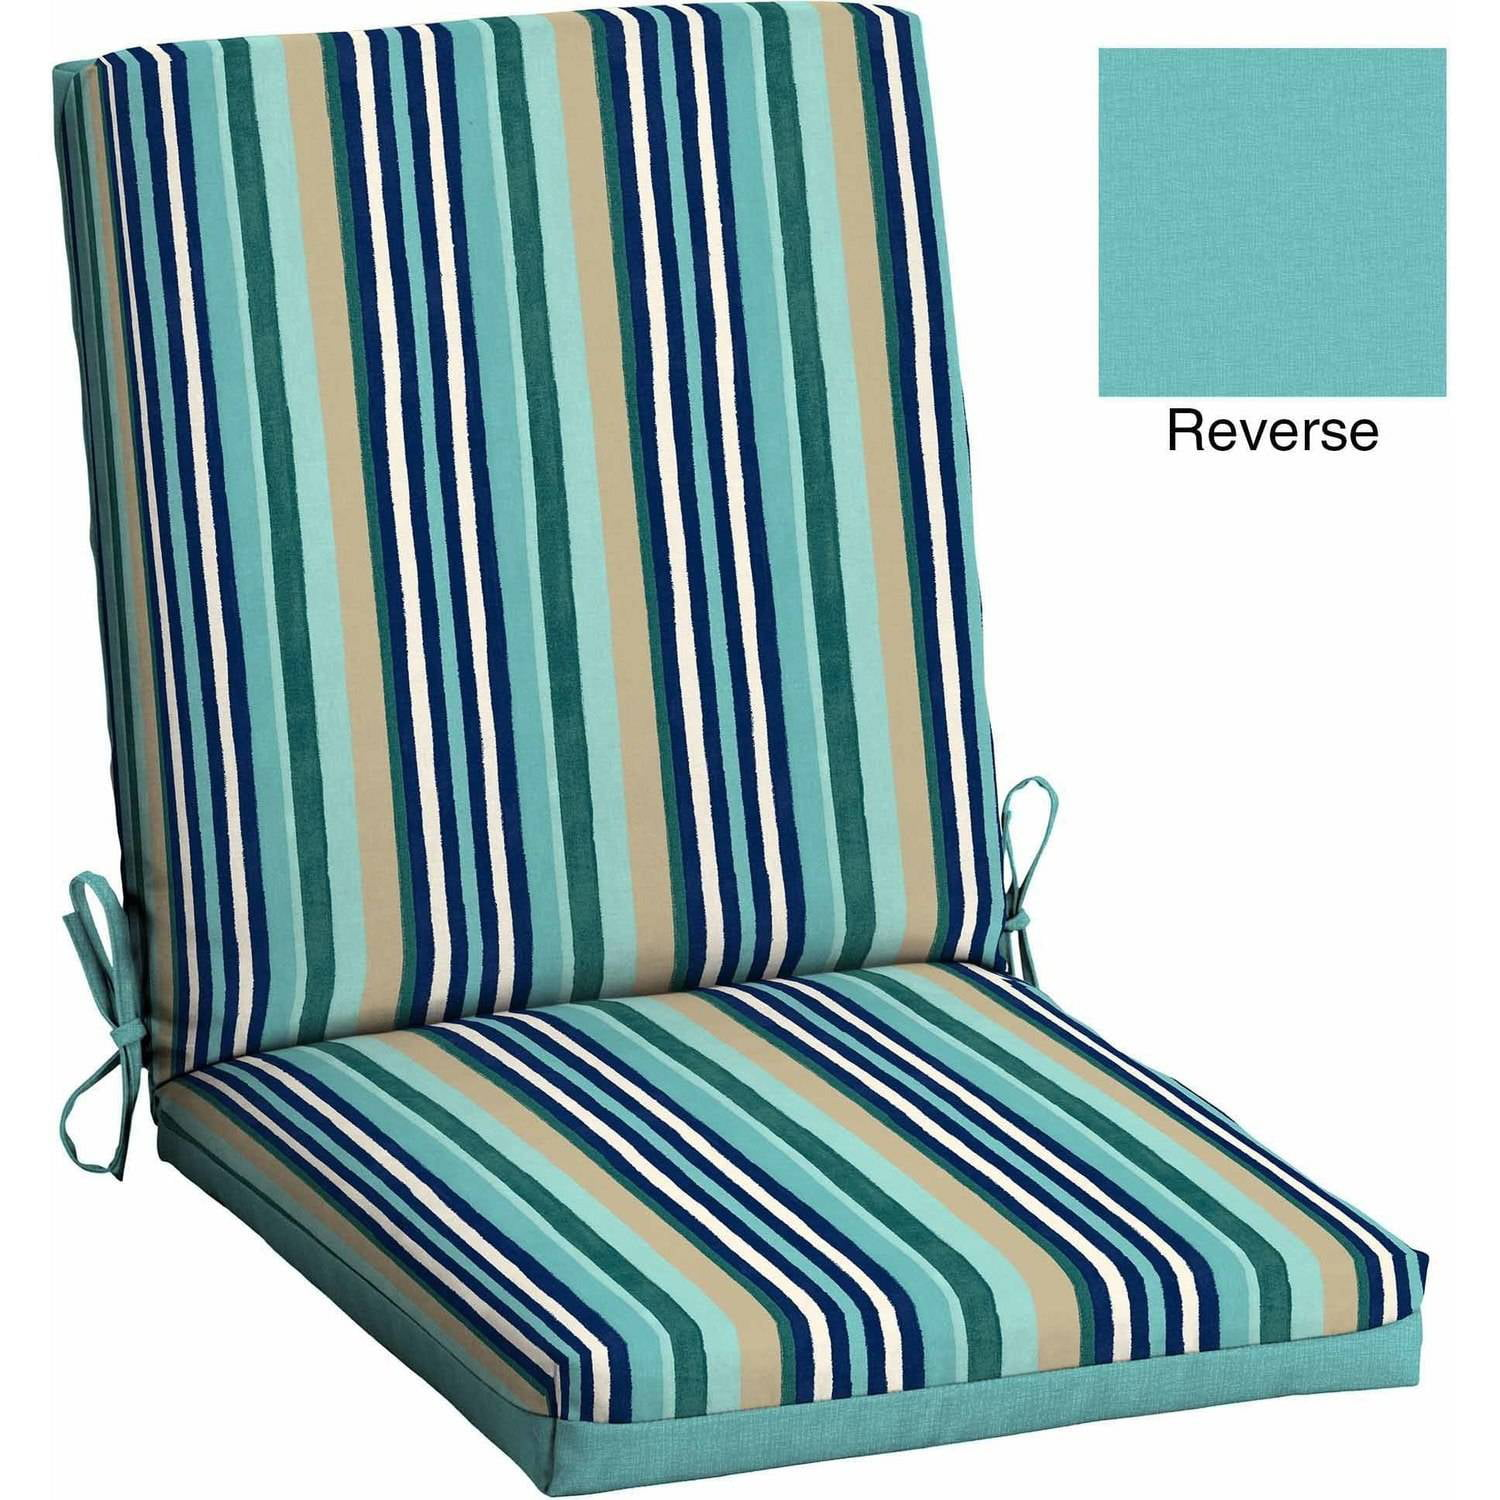 Mainstays Outdoor Chair Cushions Walmart